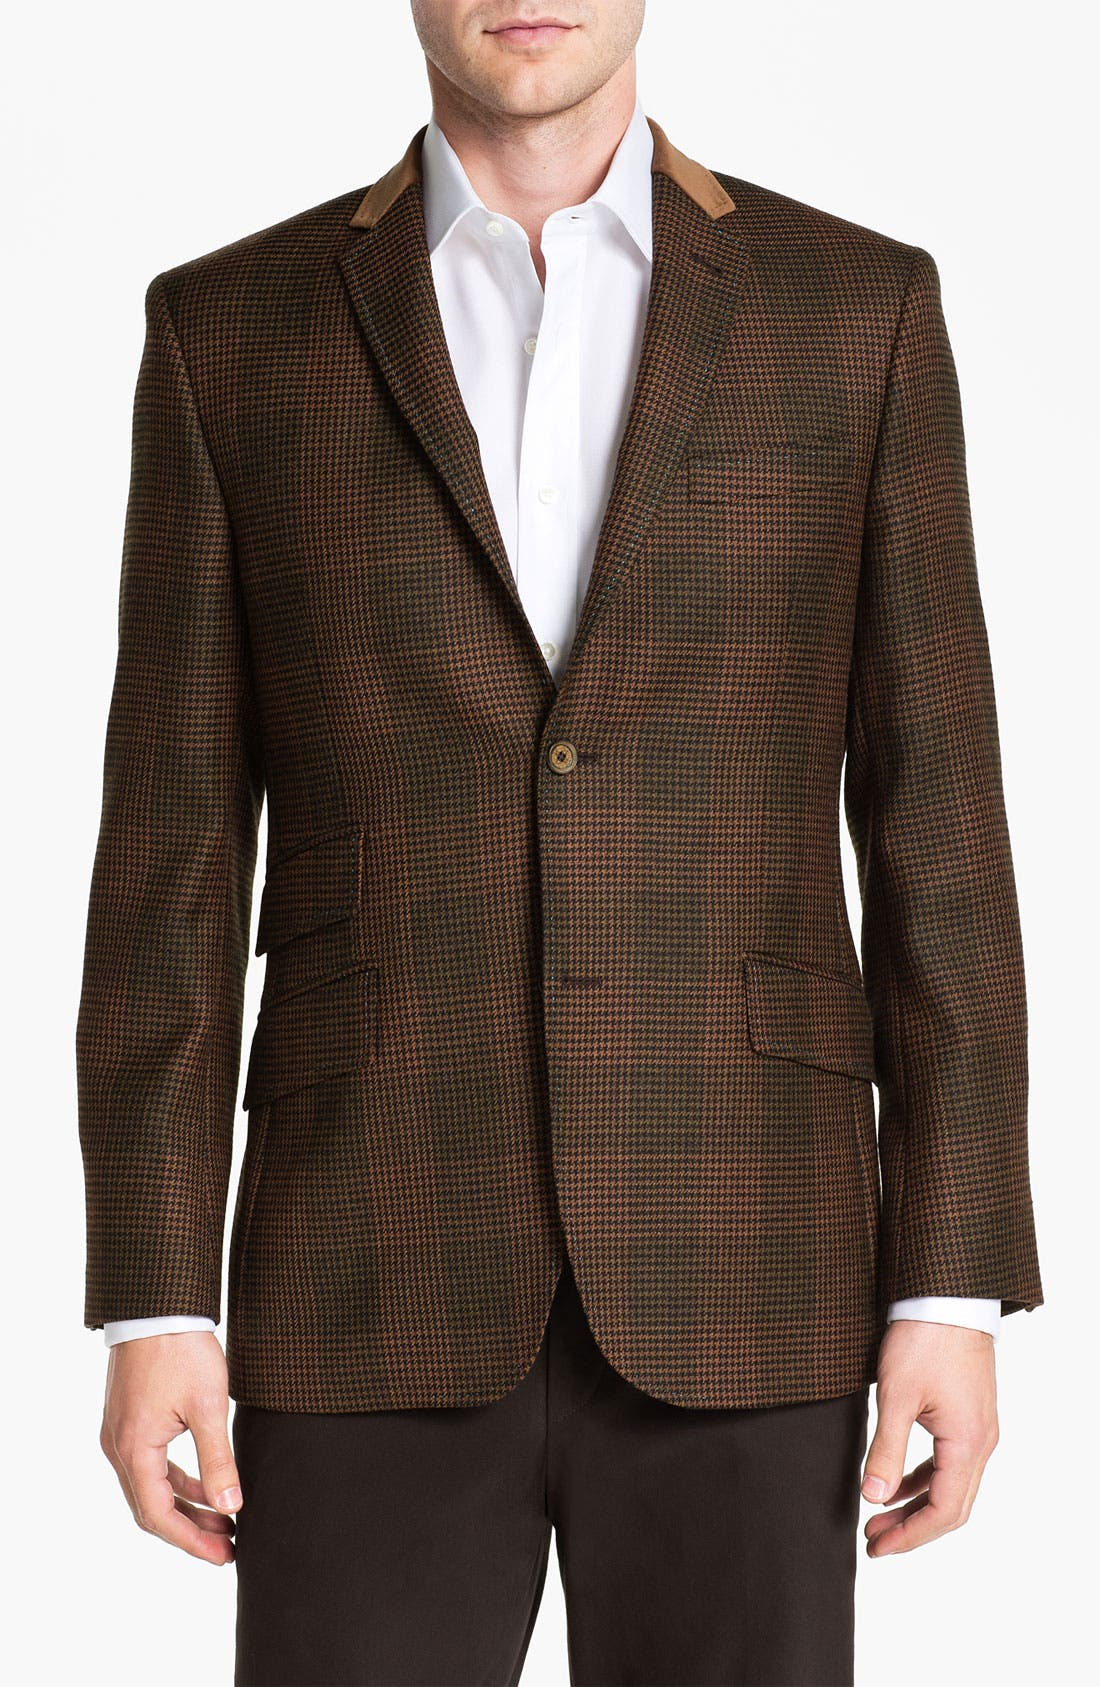 Main Image - Ted Baker London 'Global' Trim Fit Check Sportcoat